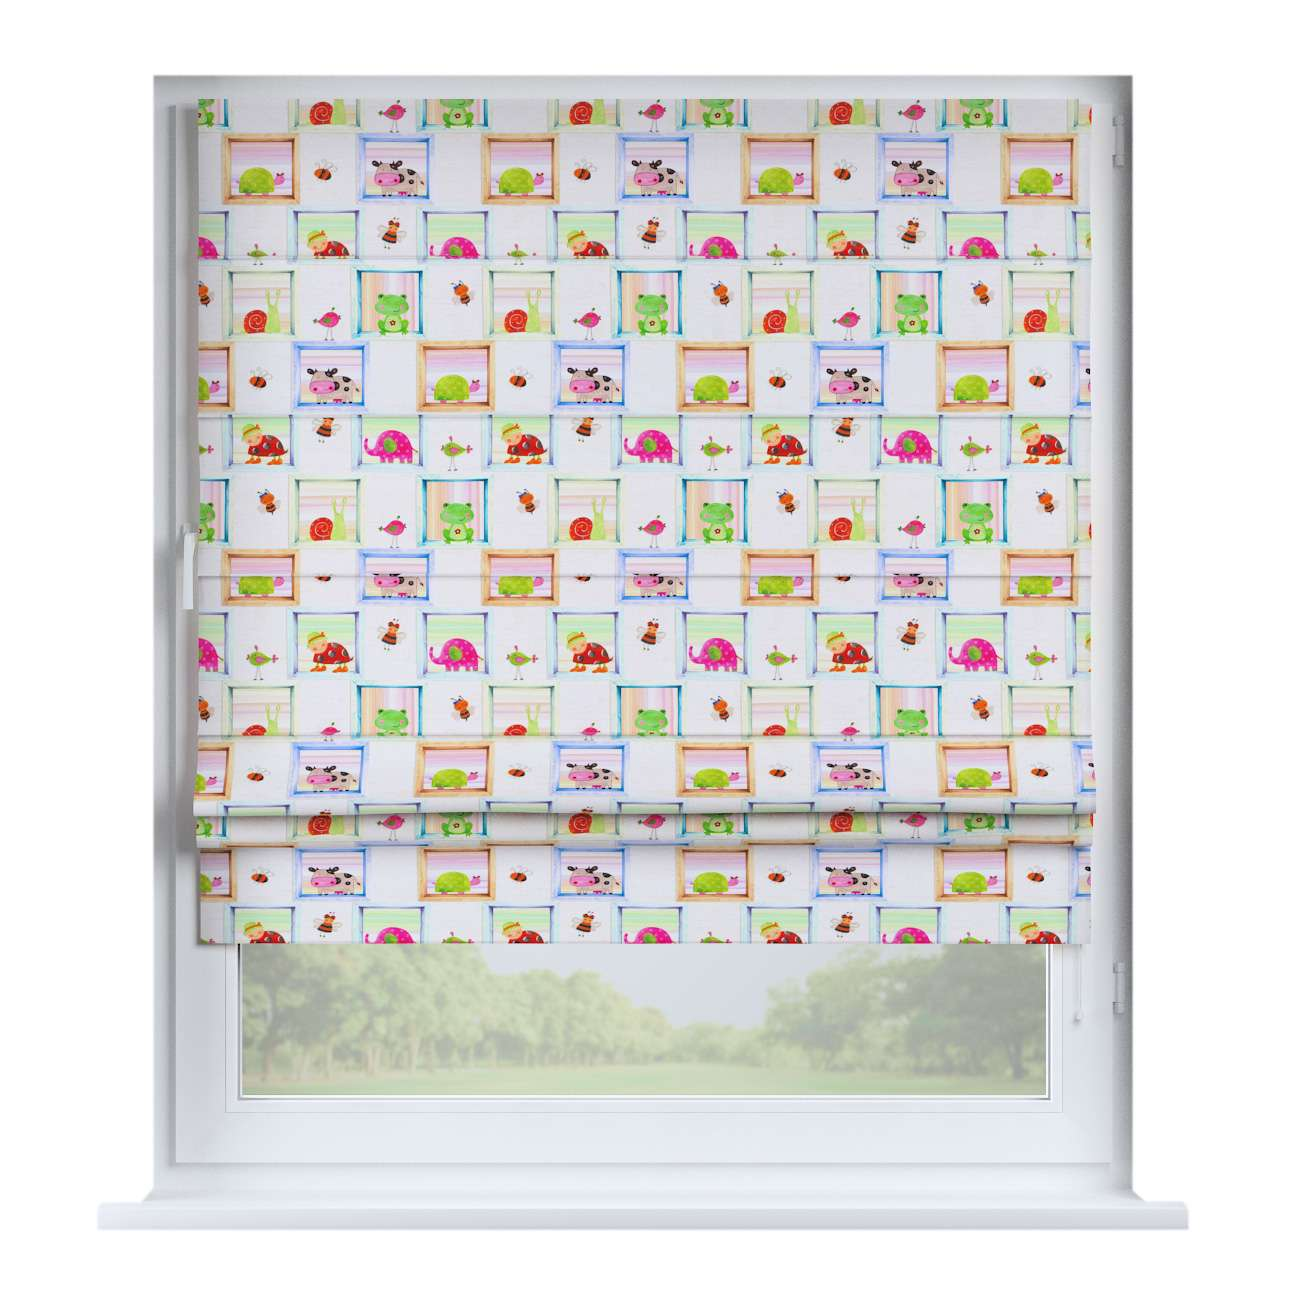 Padva roman blind  80 x 170 cm (31.5 x 67 inch) in collection Apanona, fabric: 151-04